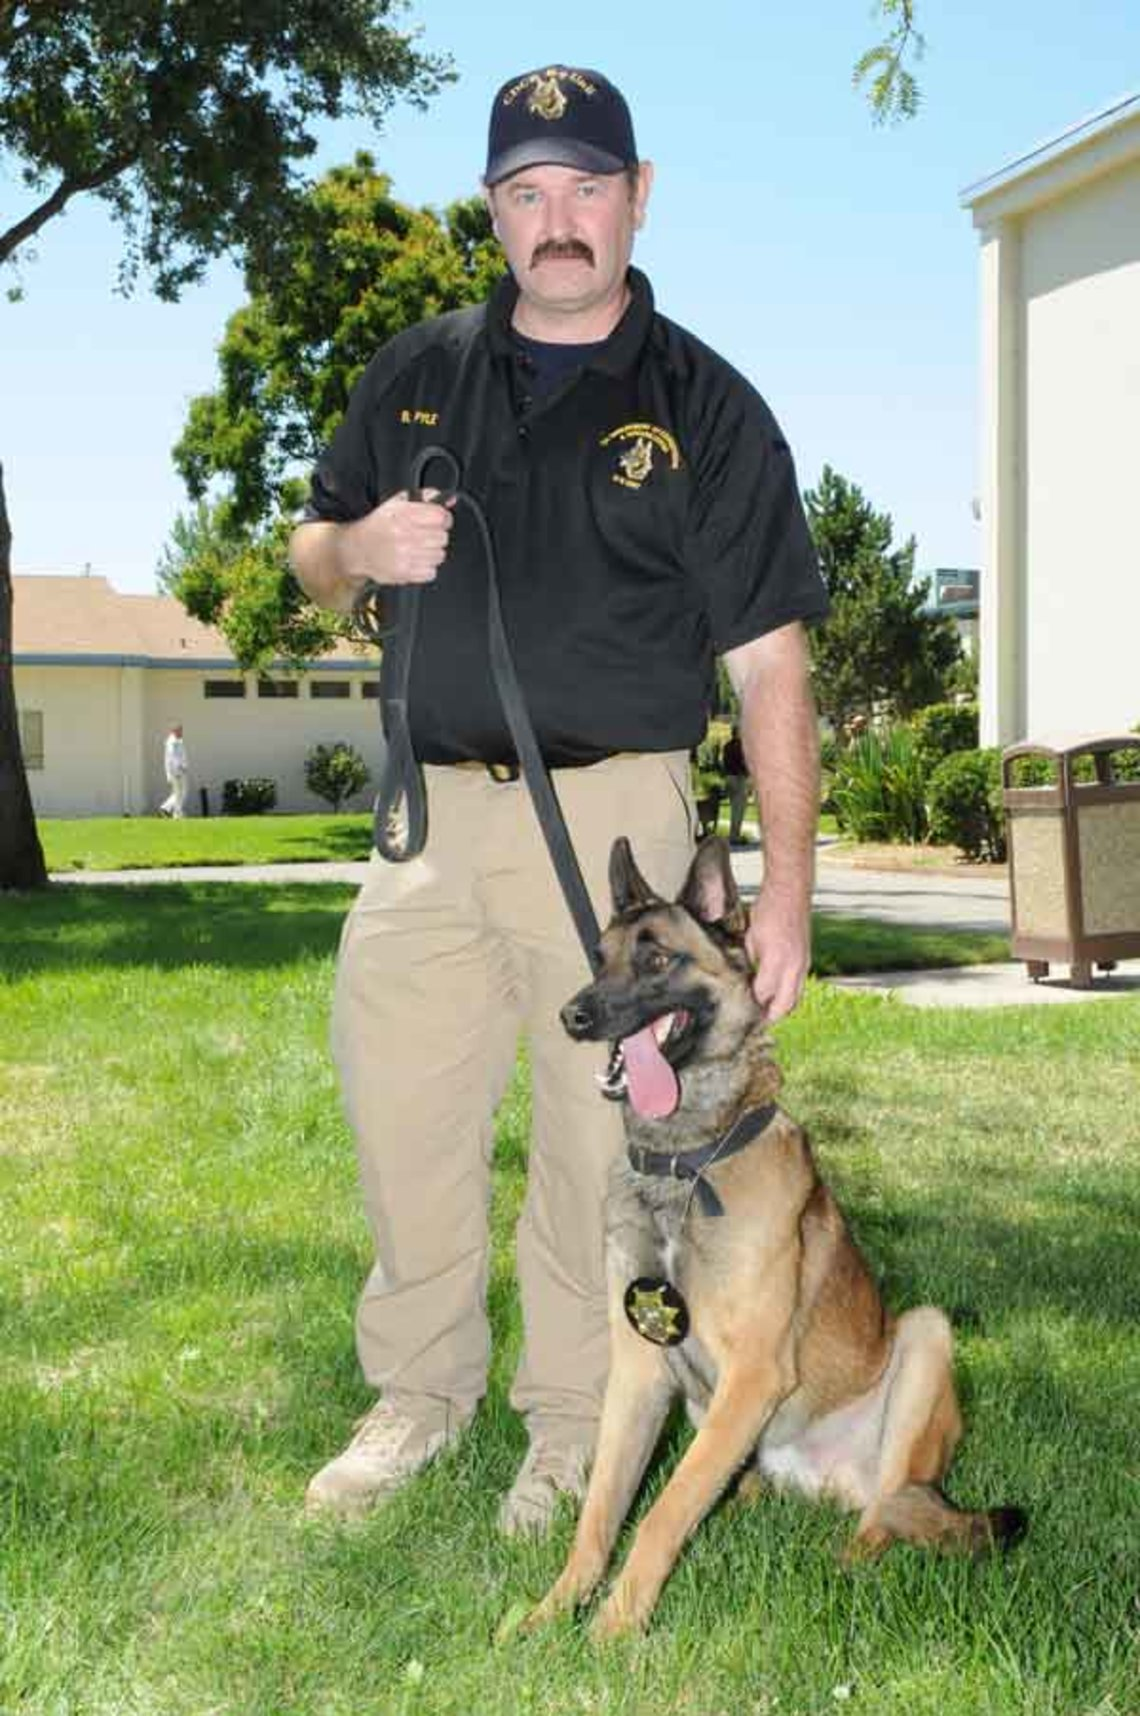 Drako, the dog who found more than a thousand cell phones in California prisons, with his handler Bryan Pyle.